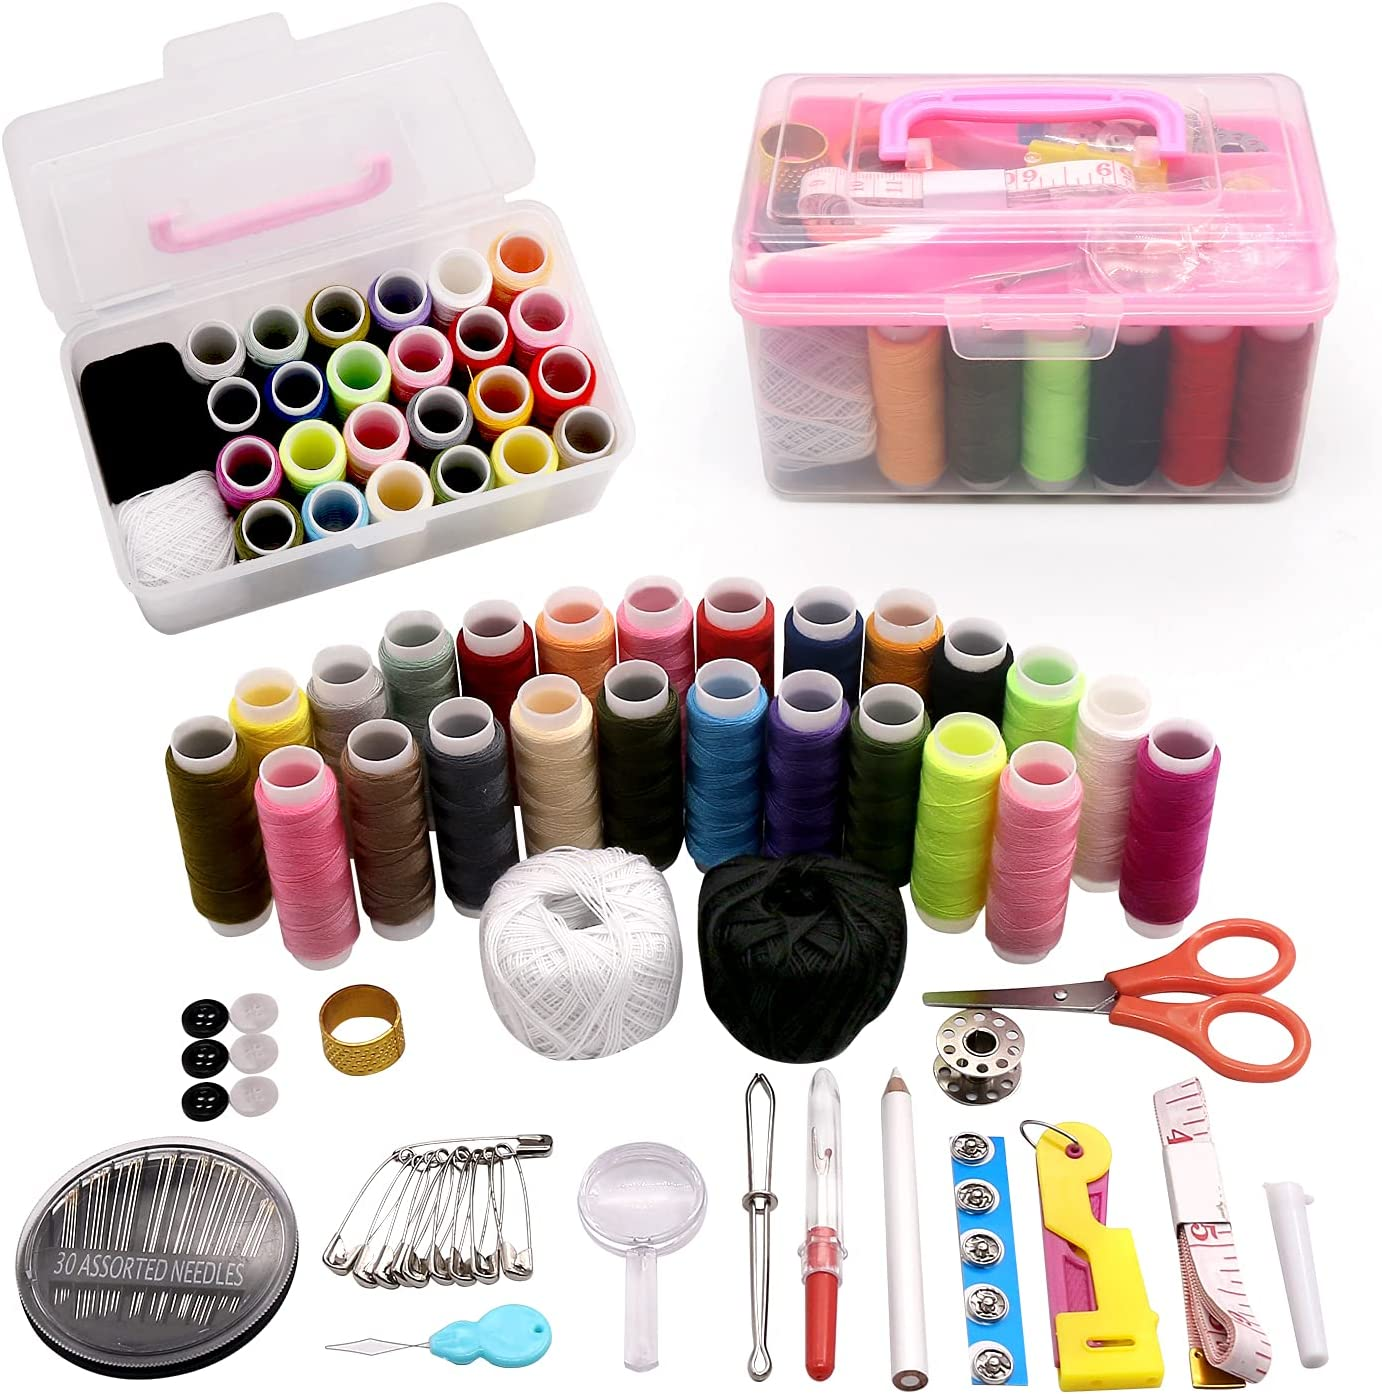 Sewing Project List Max 47% OFF price Kit - Premium BiaoGan Supplies